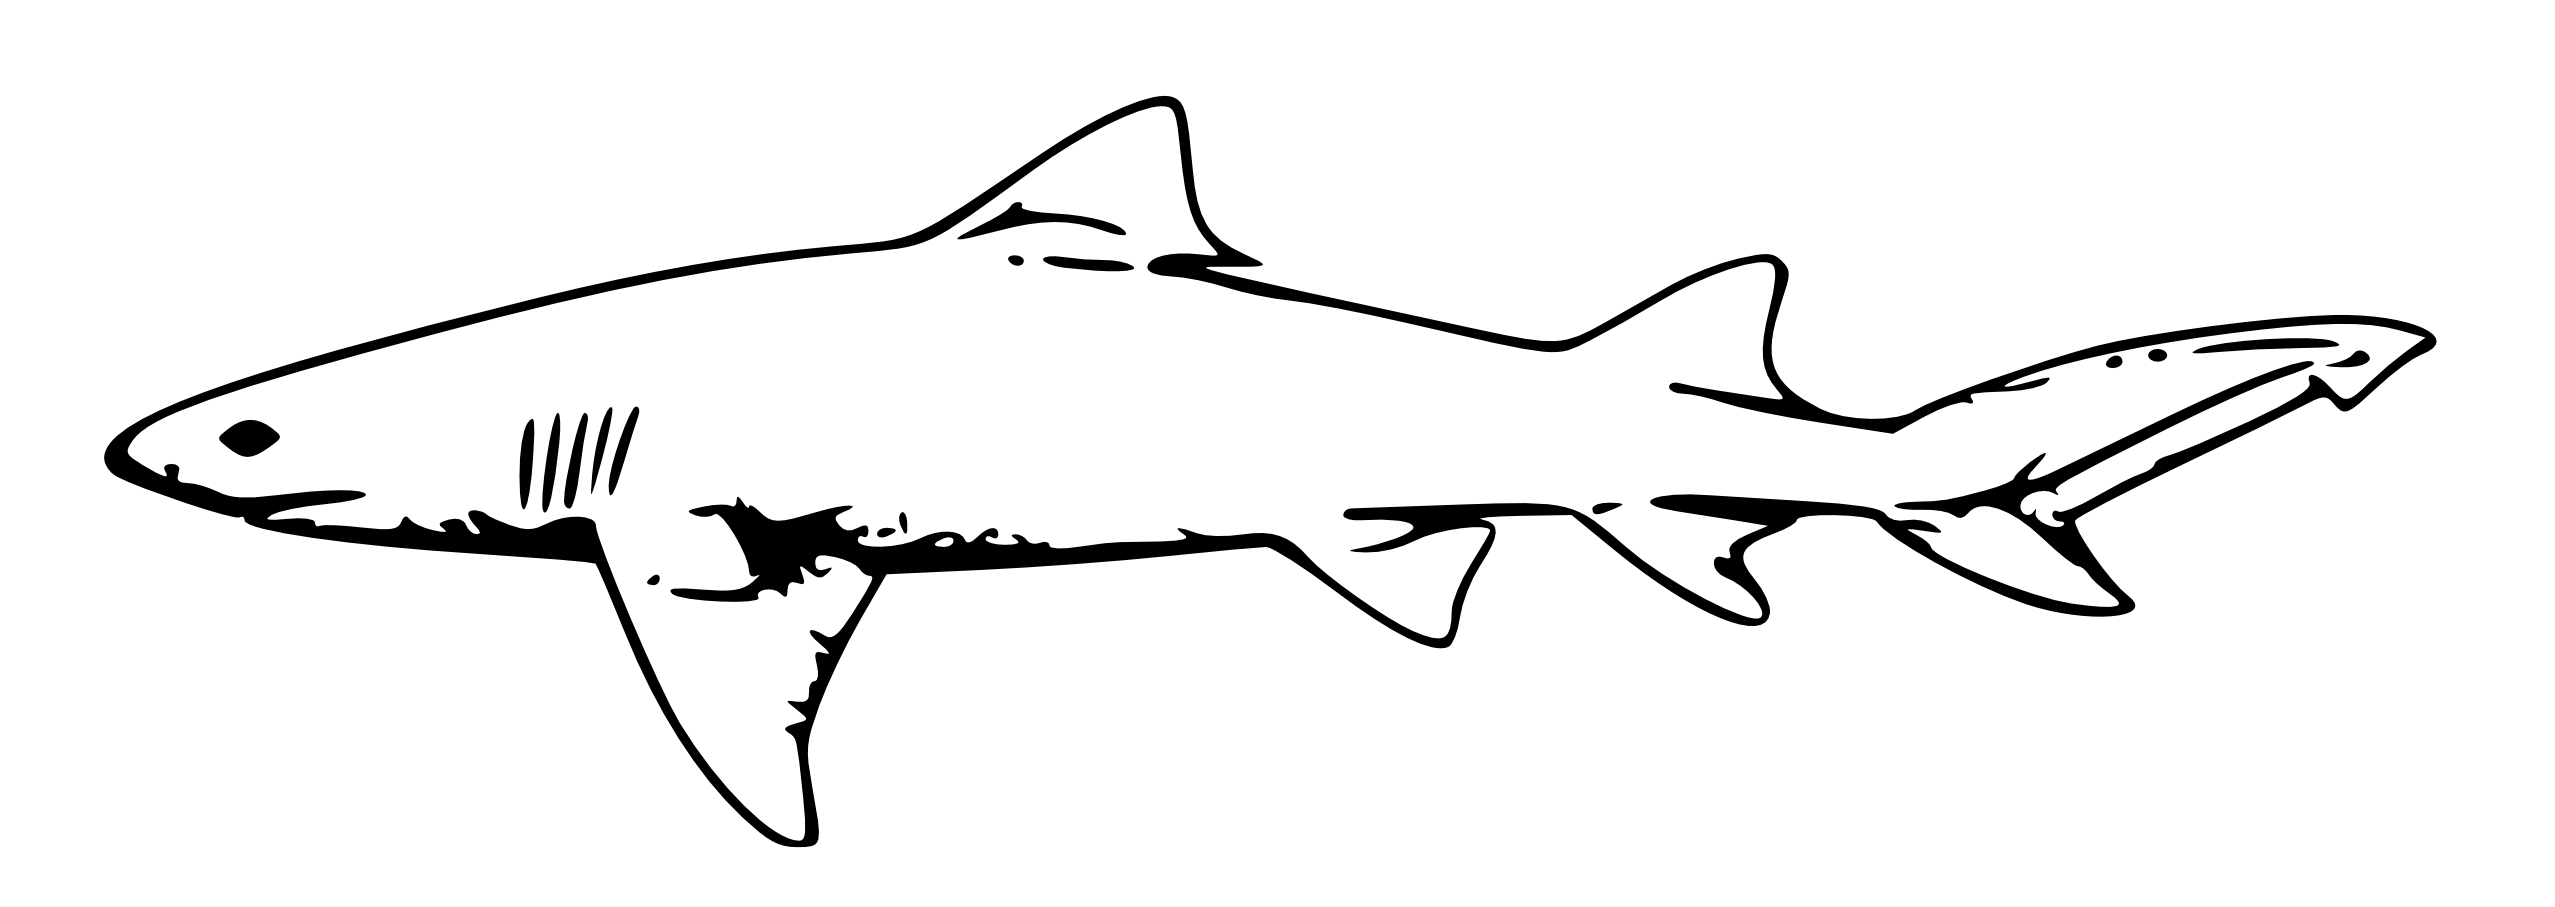 clipart black and white shark . Free cliparts that you can download ...: www.clipartbest.com/clipart-black-and-white-shark